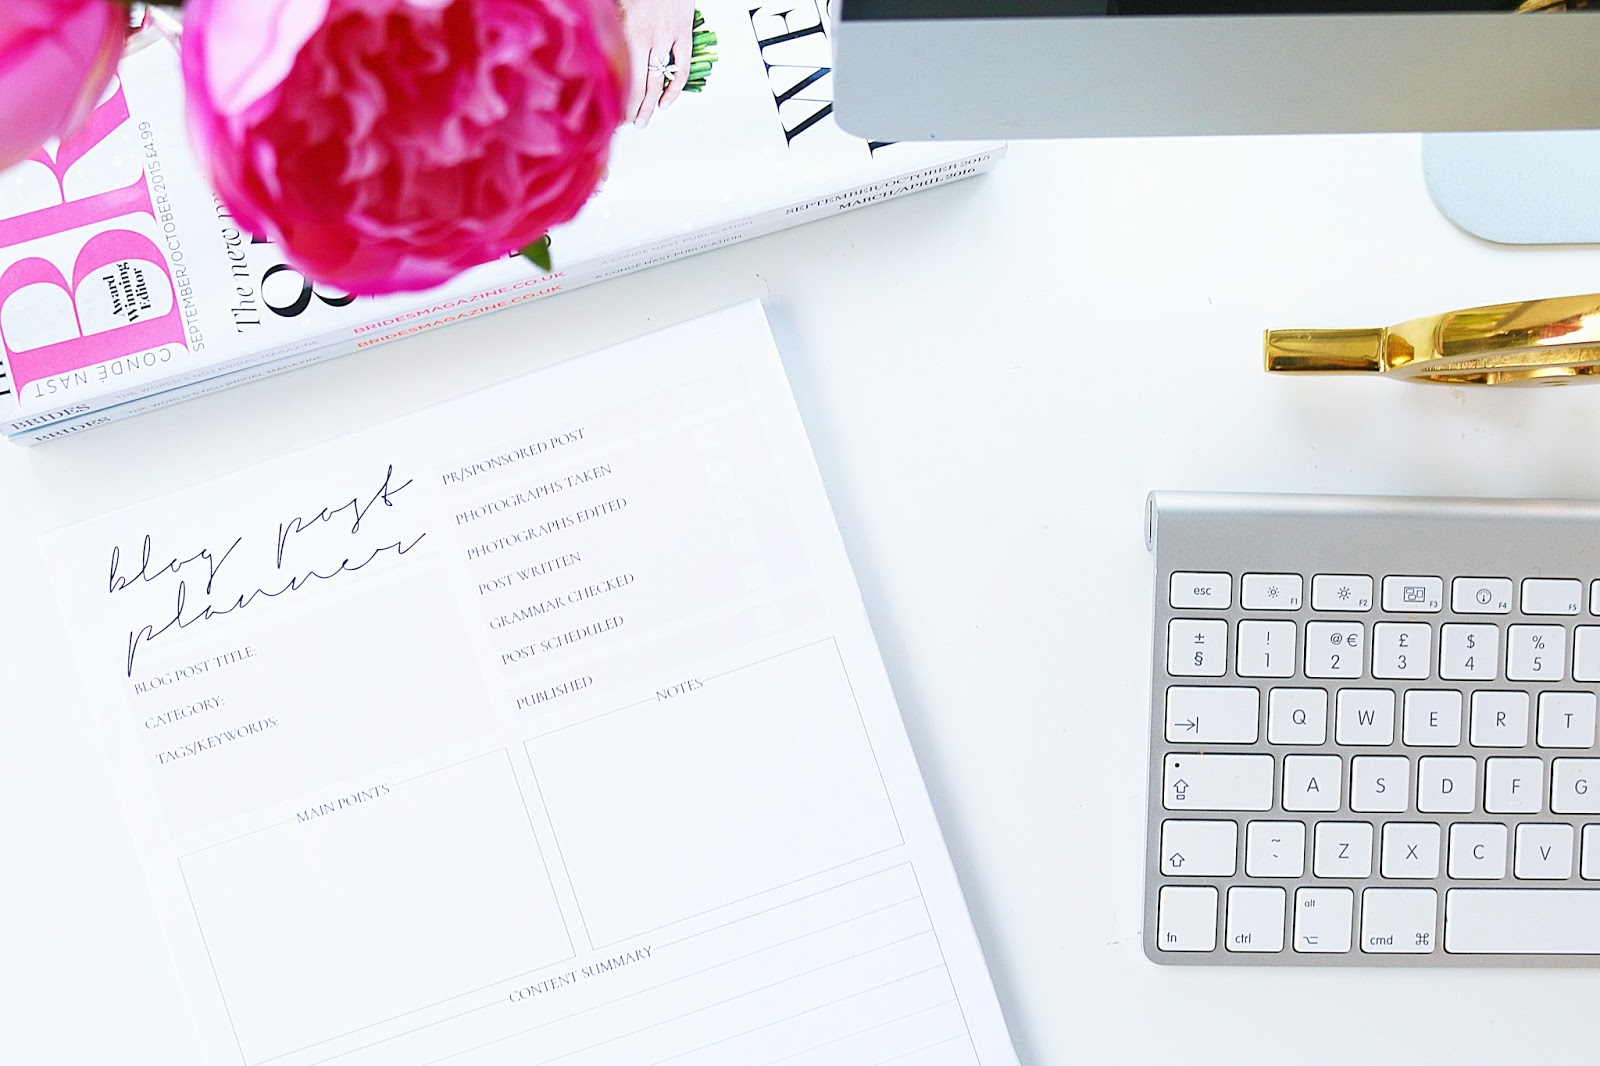 Lifestyle, how to stay motivated working from home, my desk essentials, office, office inspiration, office decor,  desk goals, blogging from home, etsy